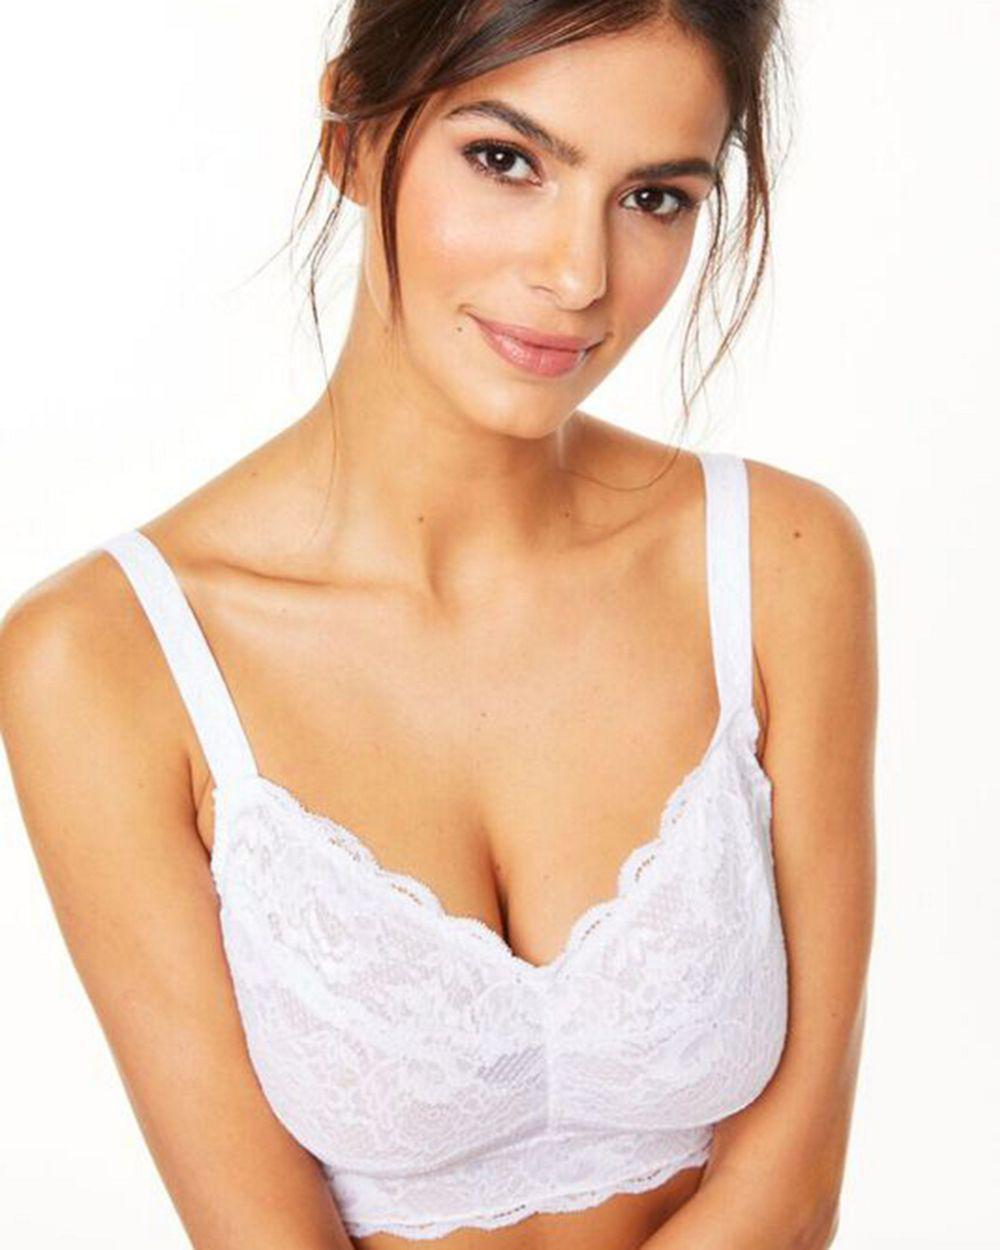 72eed61272 Lyst - Cosabella Never Say Never Curvy Sweetie Bralette in White